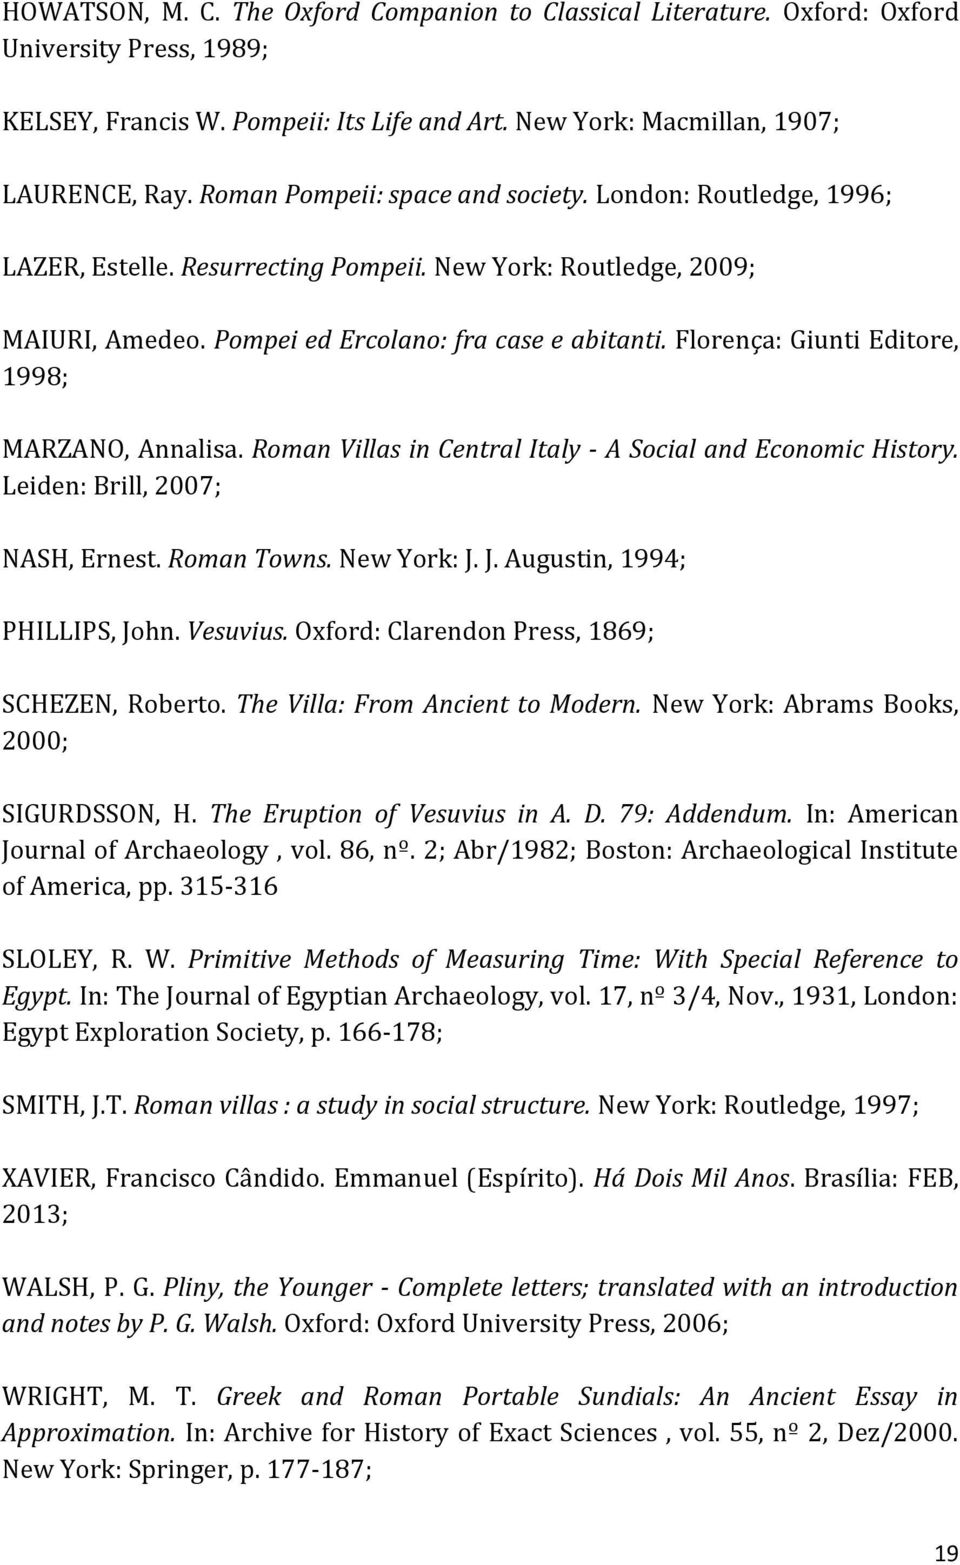 Florença: Giunti Editore, 1998; MARZANO, Annalisa. Roman Villas in Central Italy - A Social and Economic History. Leiden: Brill, 2007; NASH, Ernest. Roman Towns. New York: J.